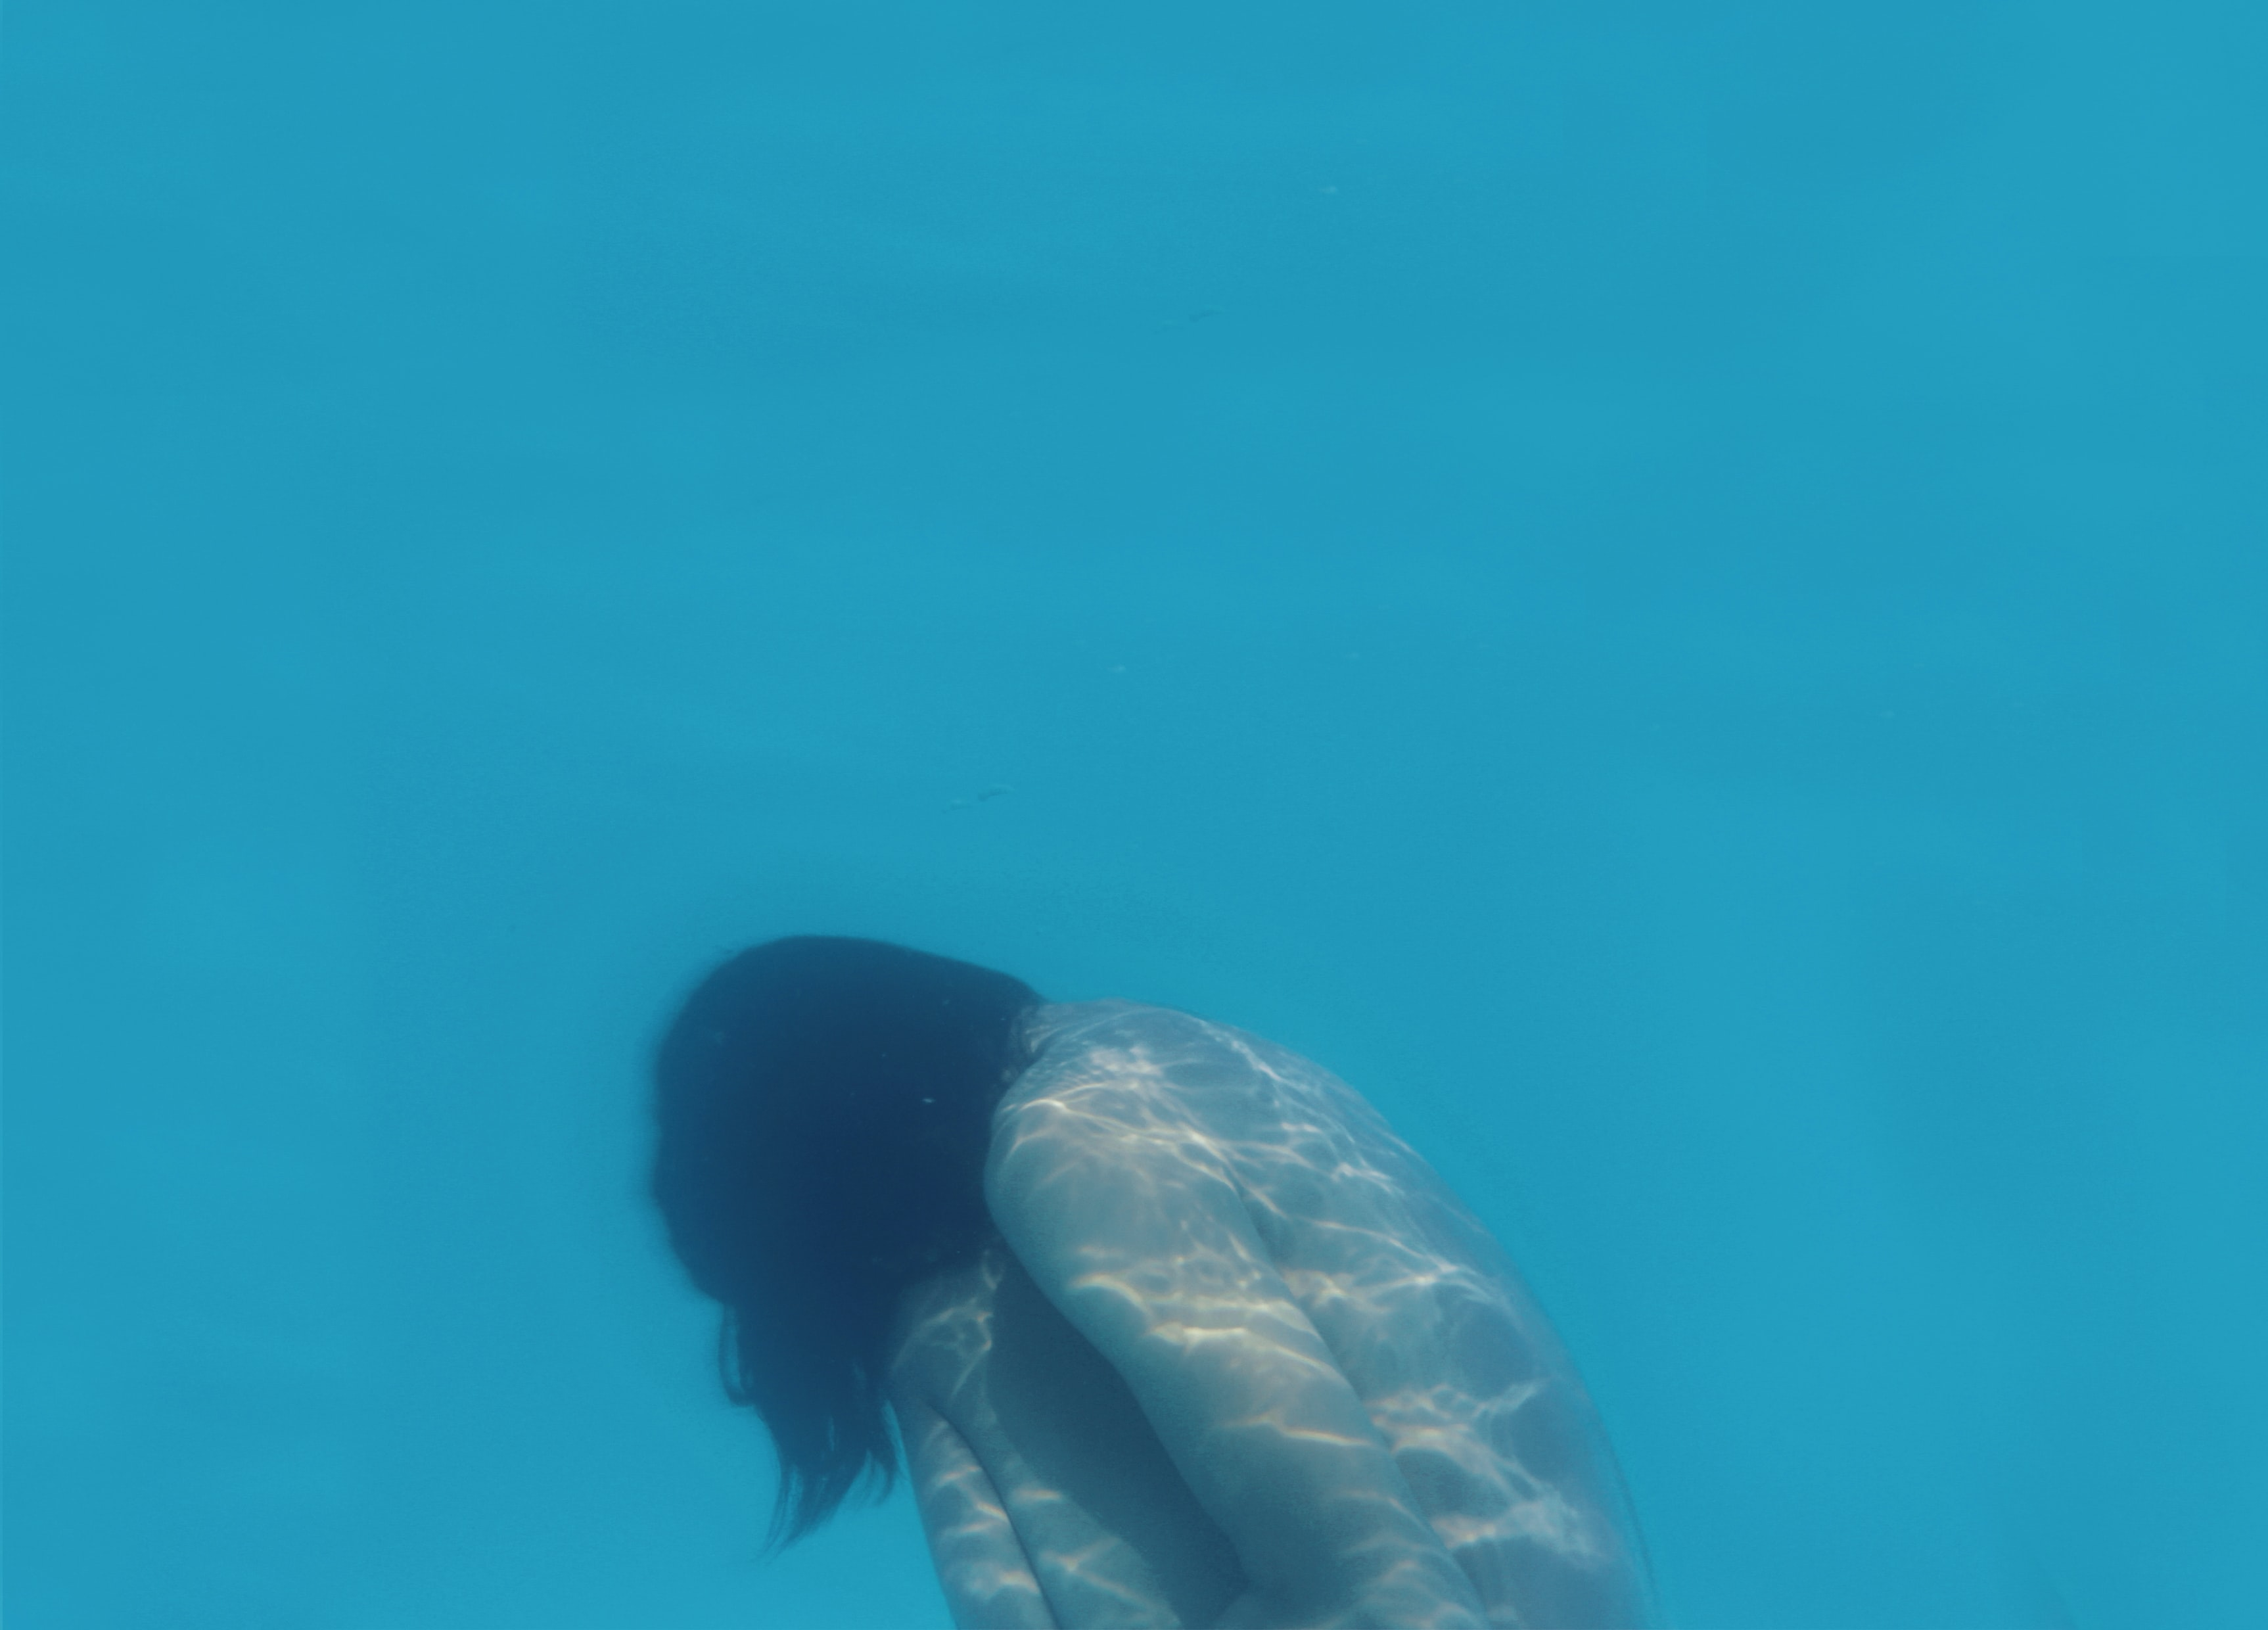 naked woman underwater photo